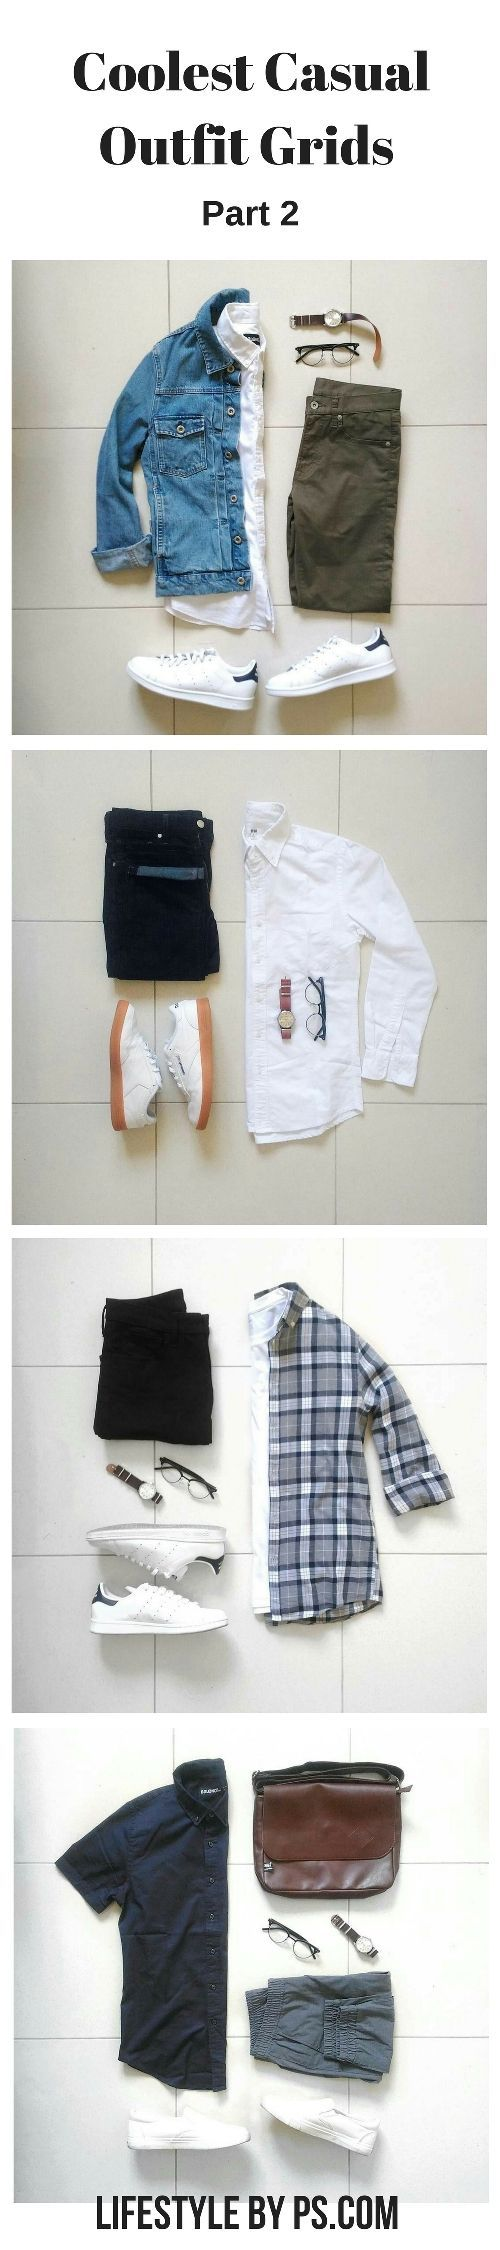 casual outfit grids #mens #fashion